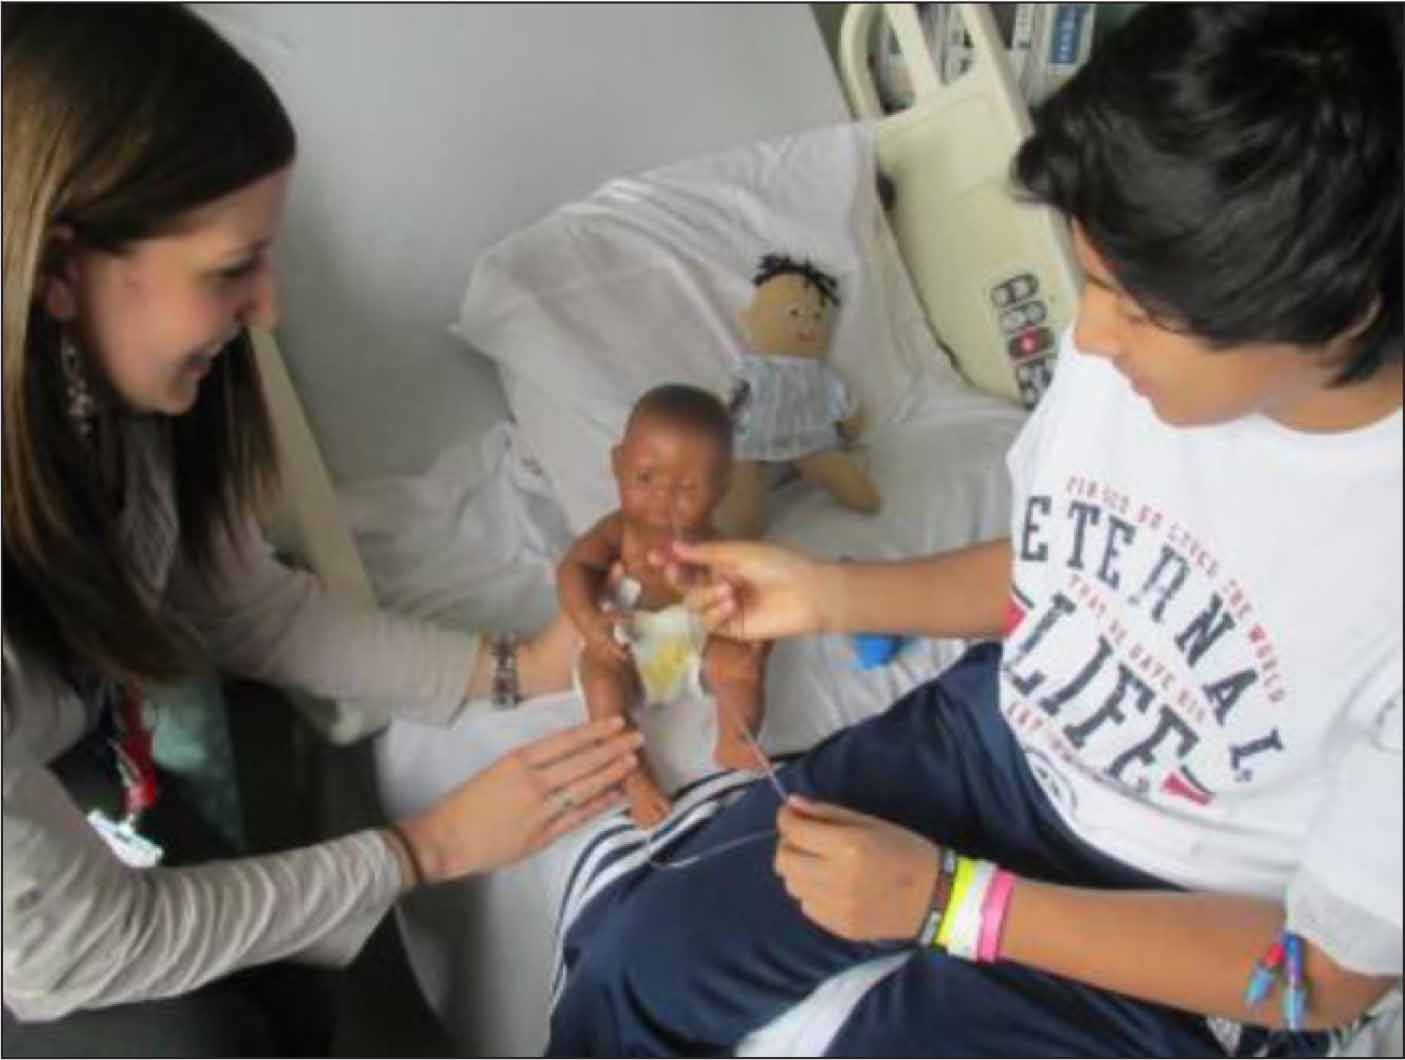 Child life specialist and co-author, Kelsey Mora, educating a 14-year-old about a previously placed peripherally inserted central catheter line and nasogastric tube.